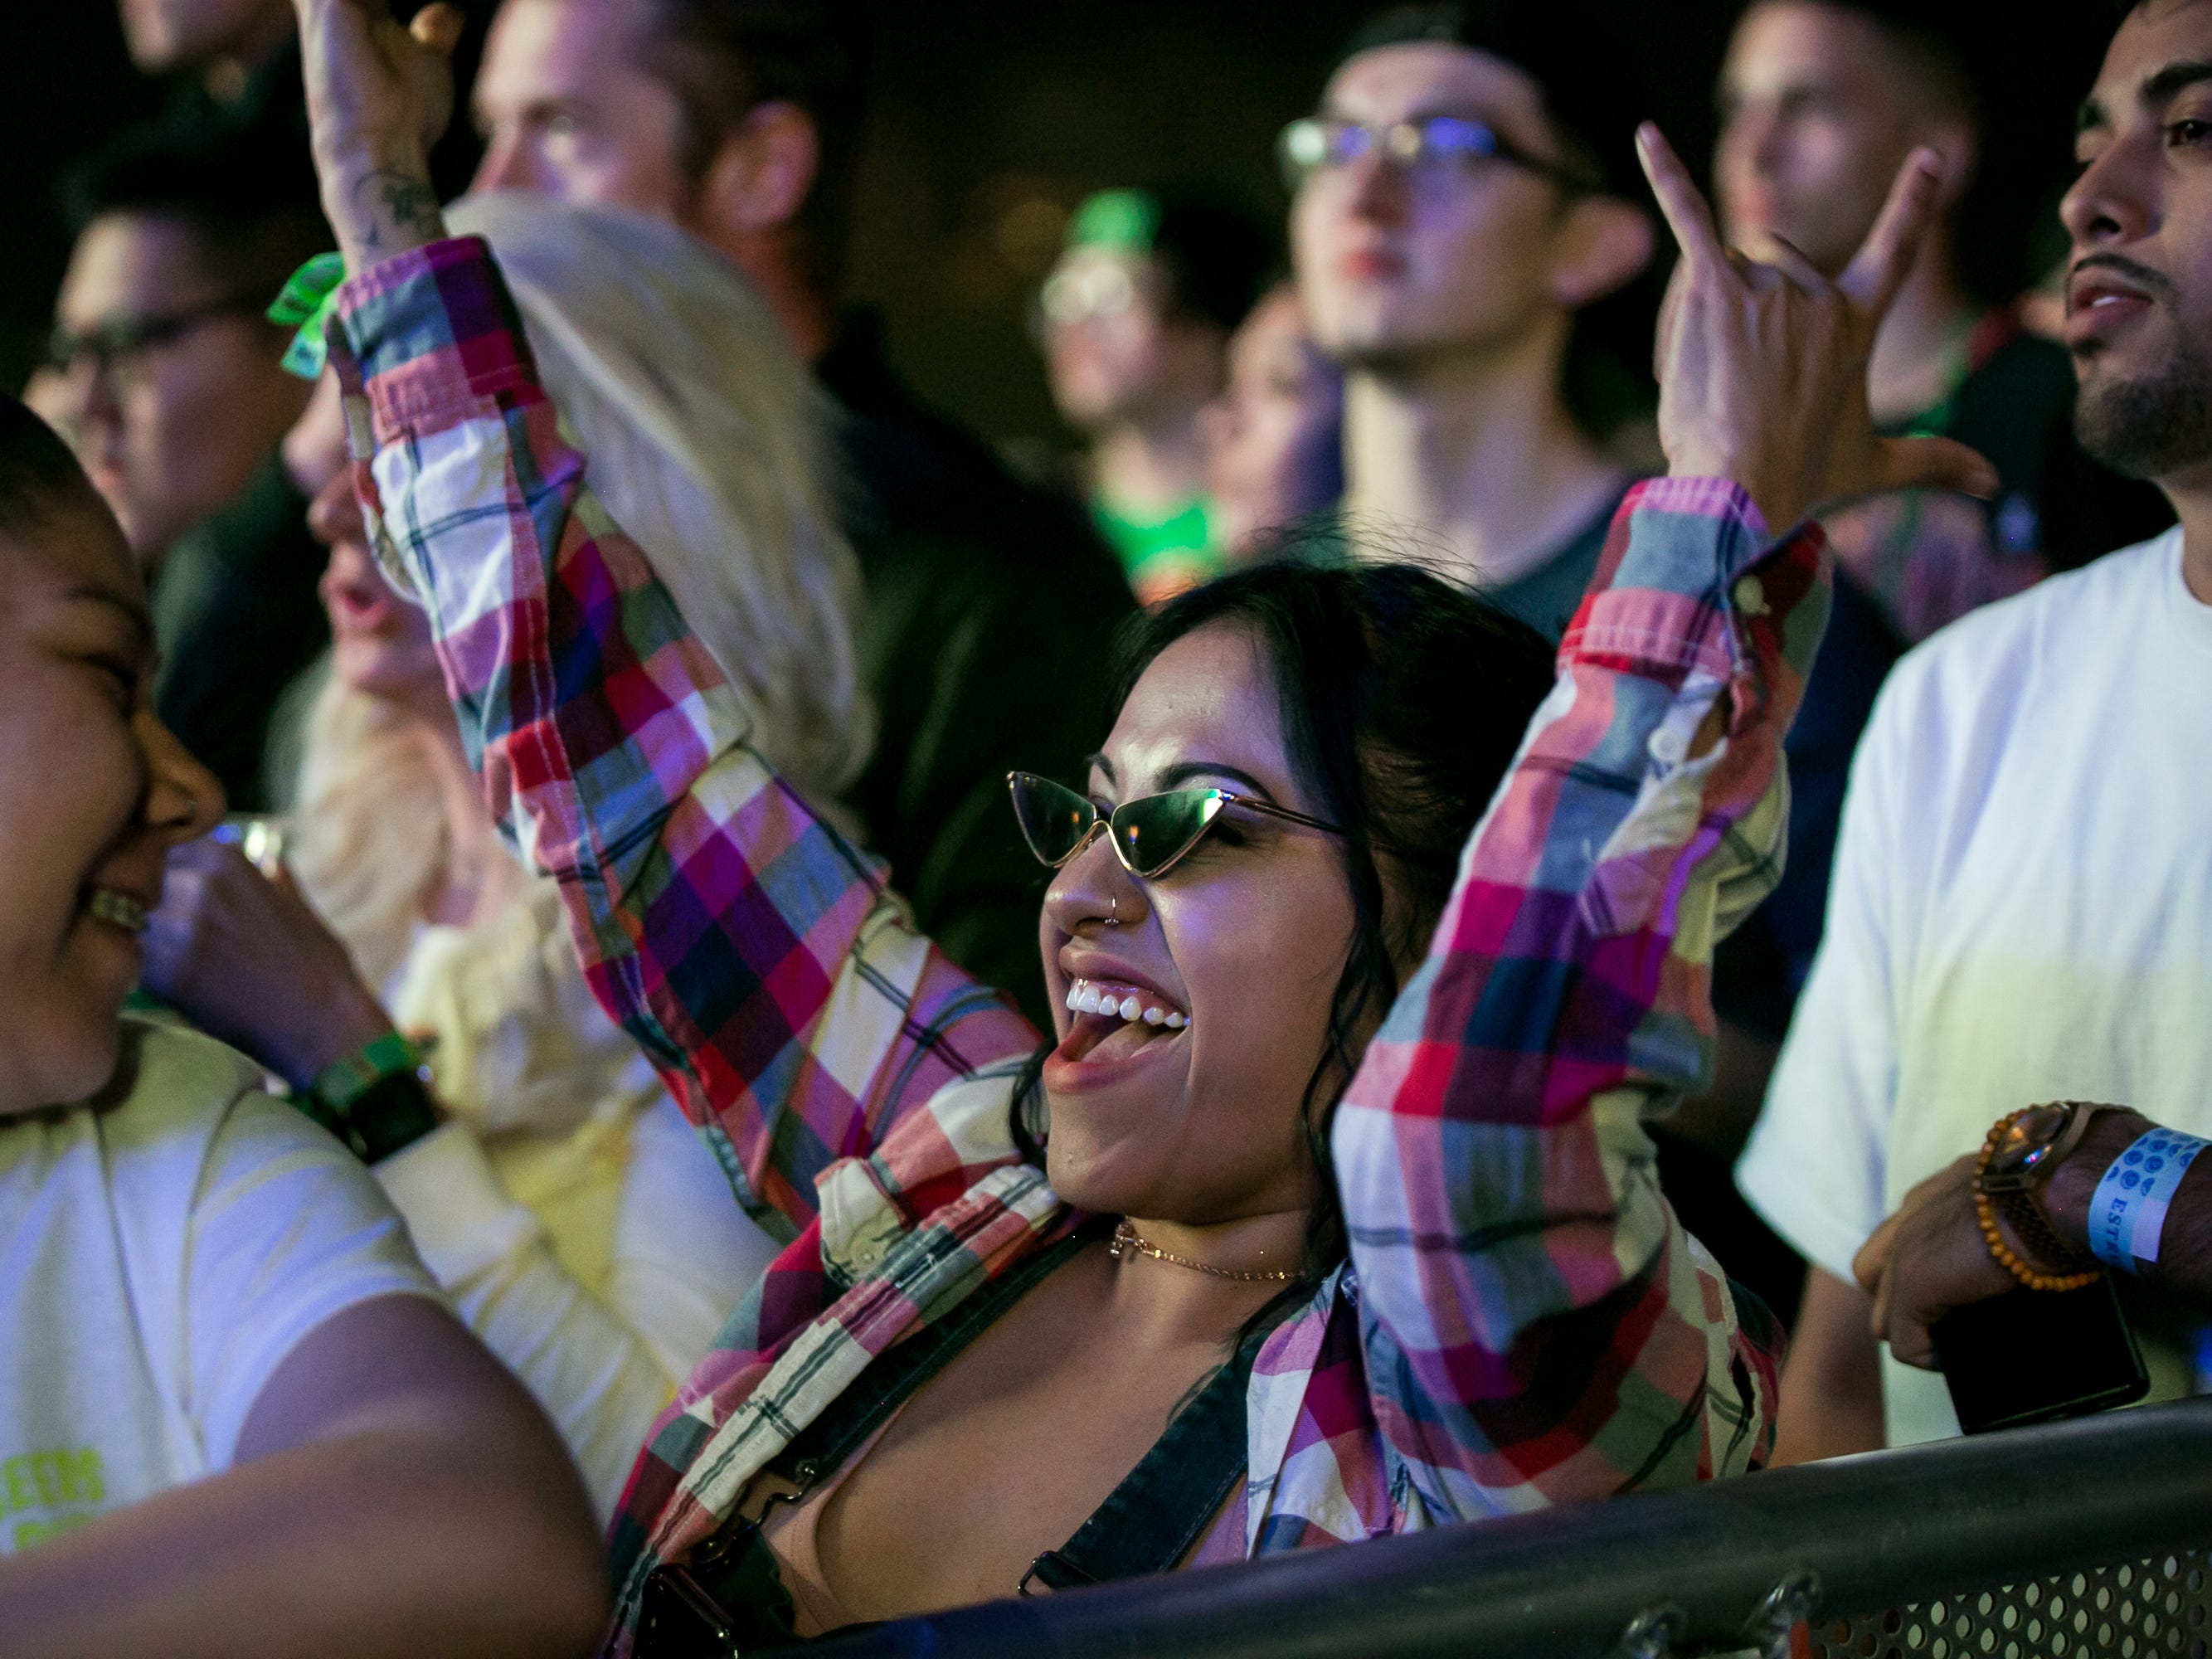 Fans cheer at Pot of Gold Music Festival at Steele Indian School Park on Friday, March 15, 2019.